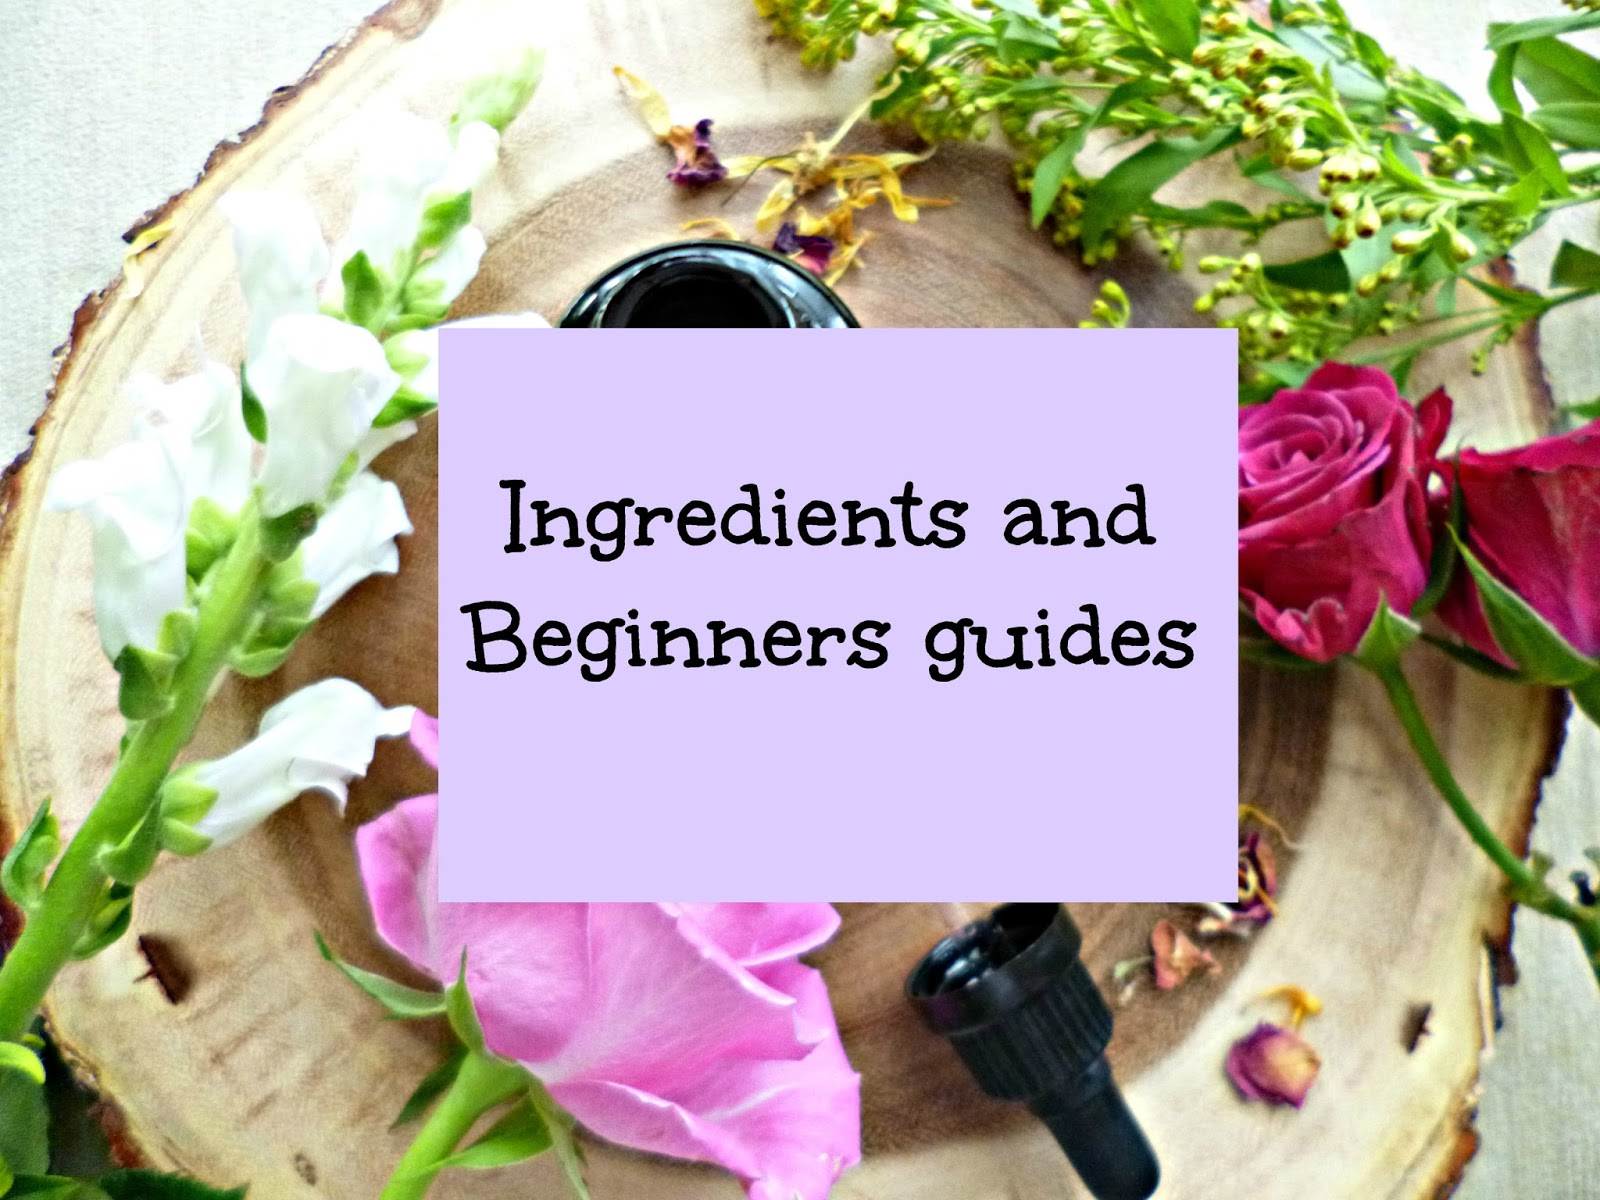 Ingredients and beginners guides